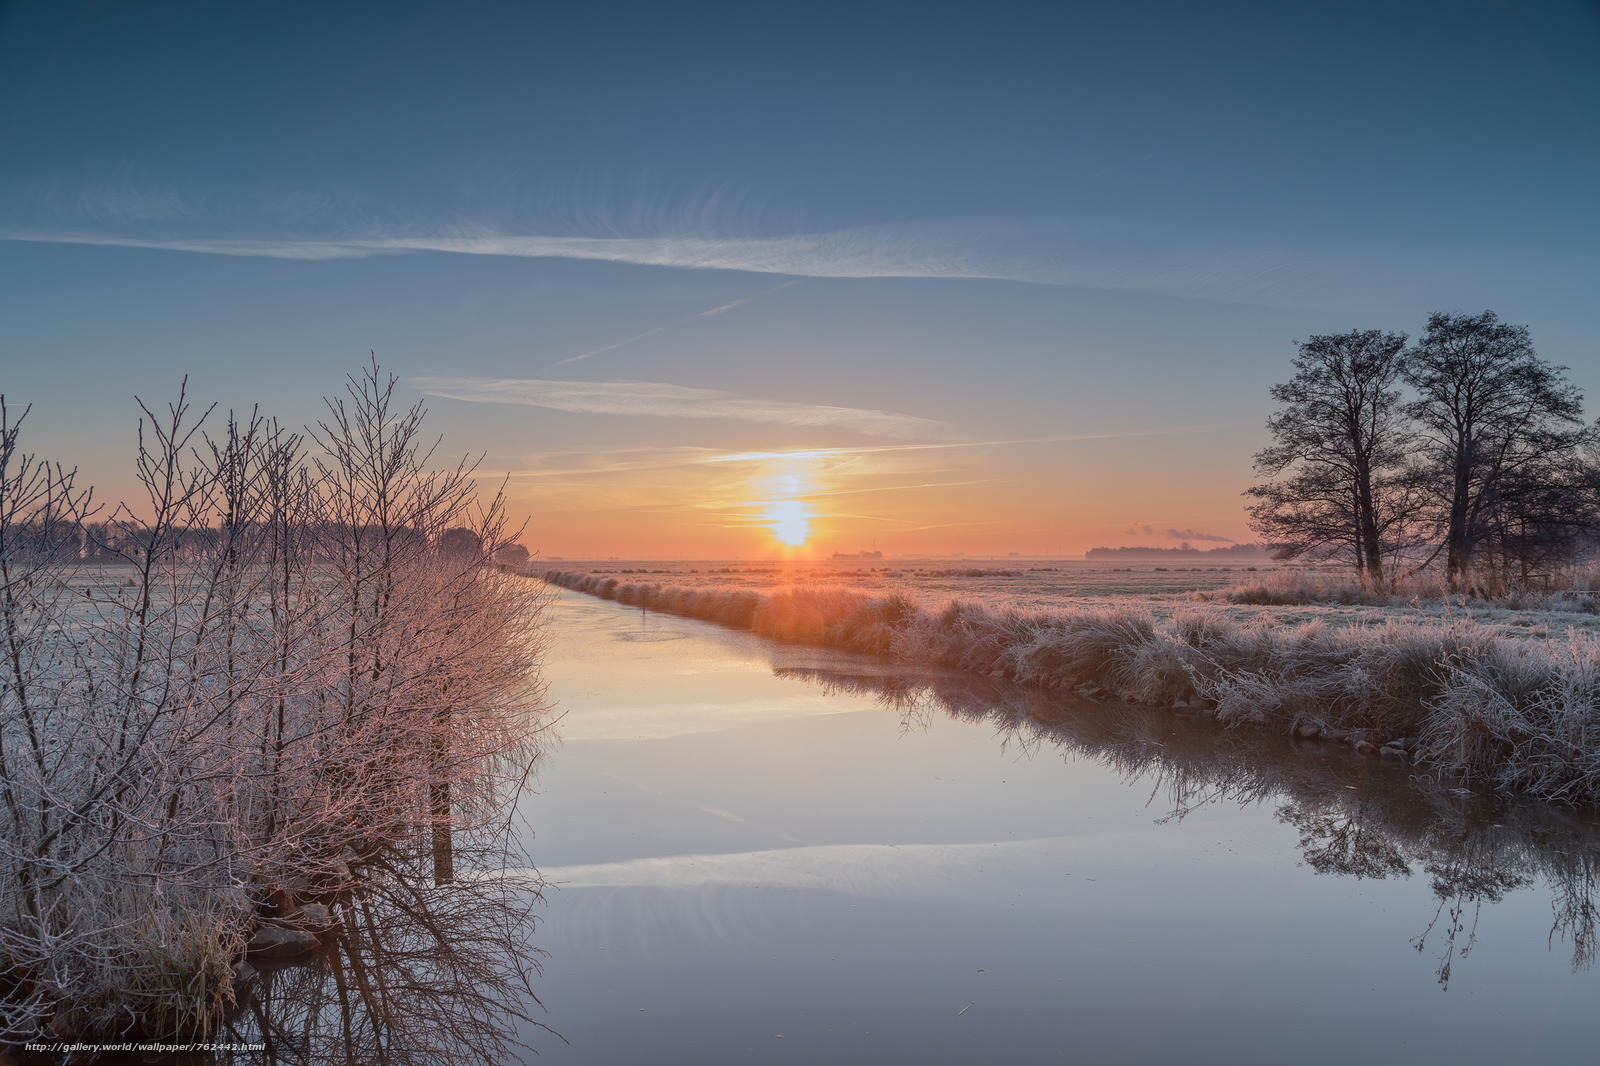 sunset, River, frost, trees, landscape